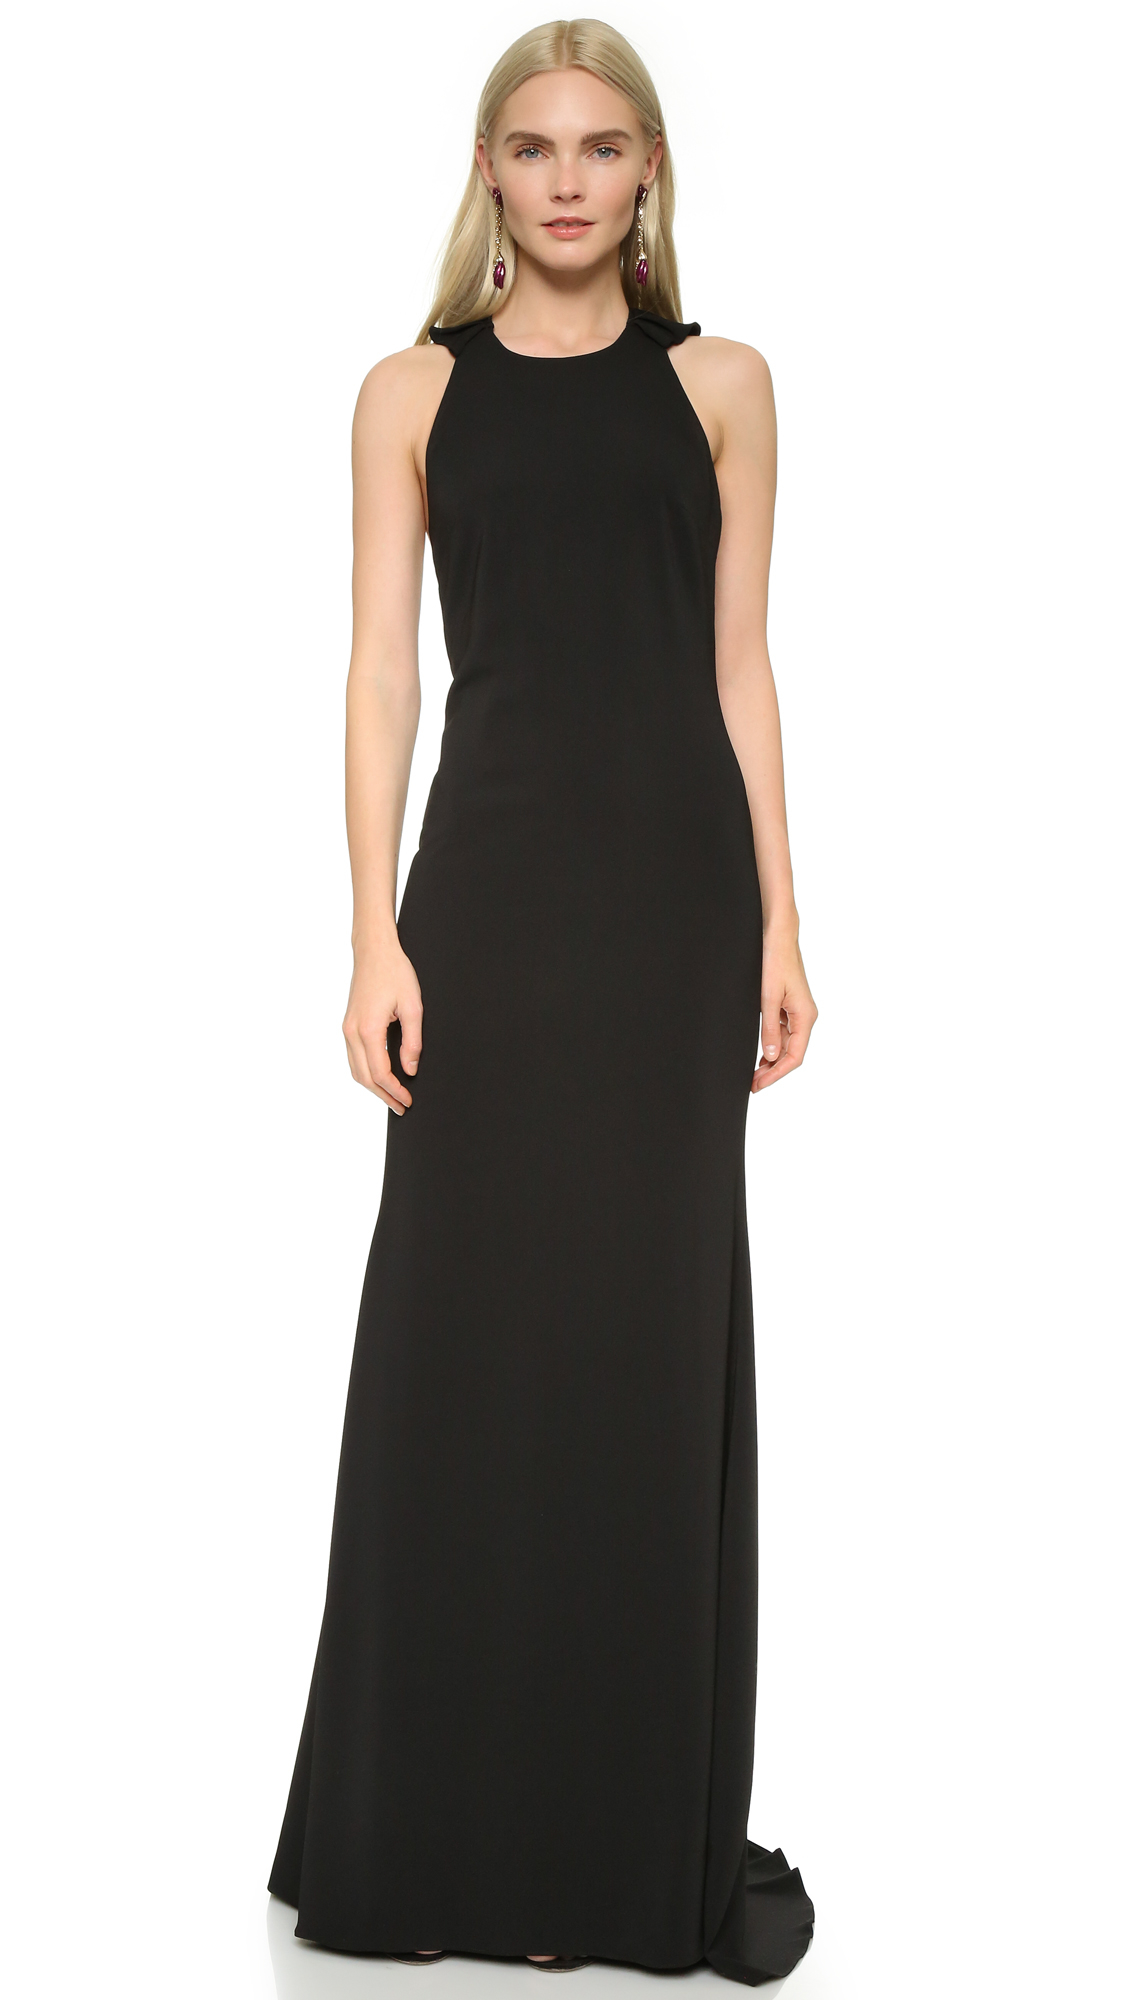 Badgley mischka ruffle back gown in black save 40 lyst for Badgley mischka store nyc